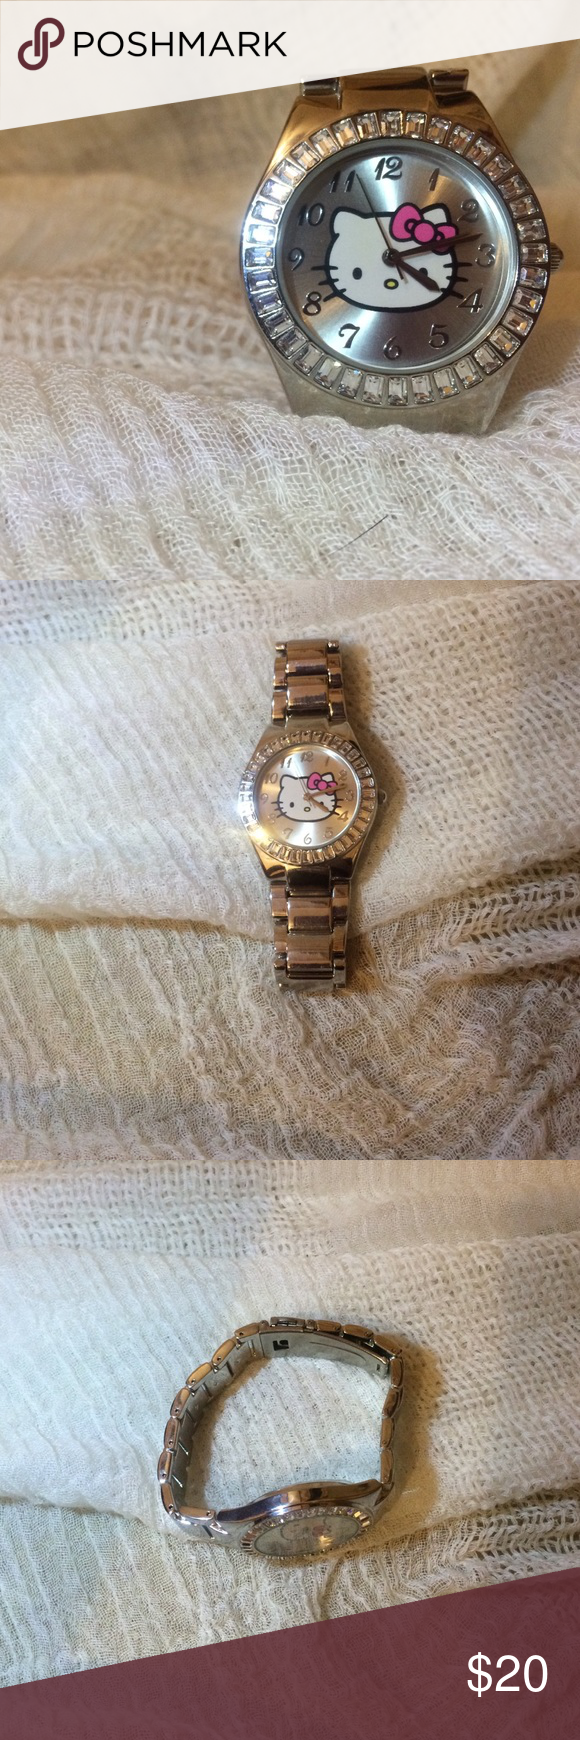 Hello kitty watch 💕 Never worn but needs a new battery I received it has a birthday gift and just never wore it. Accessories Watches